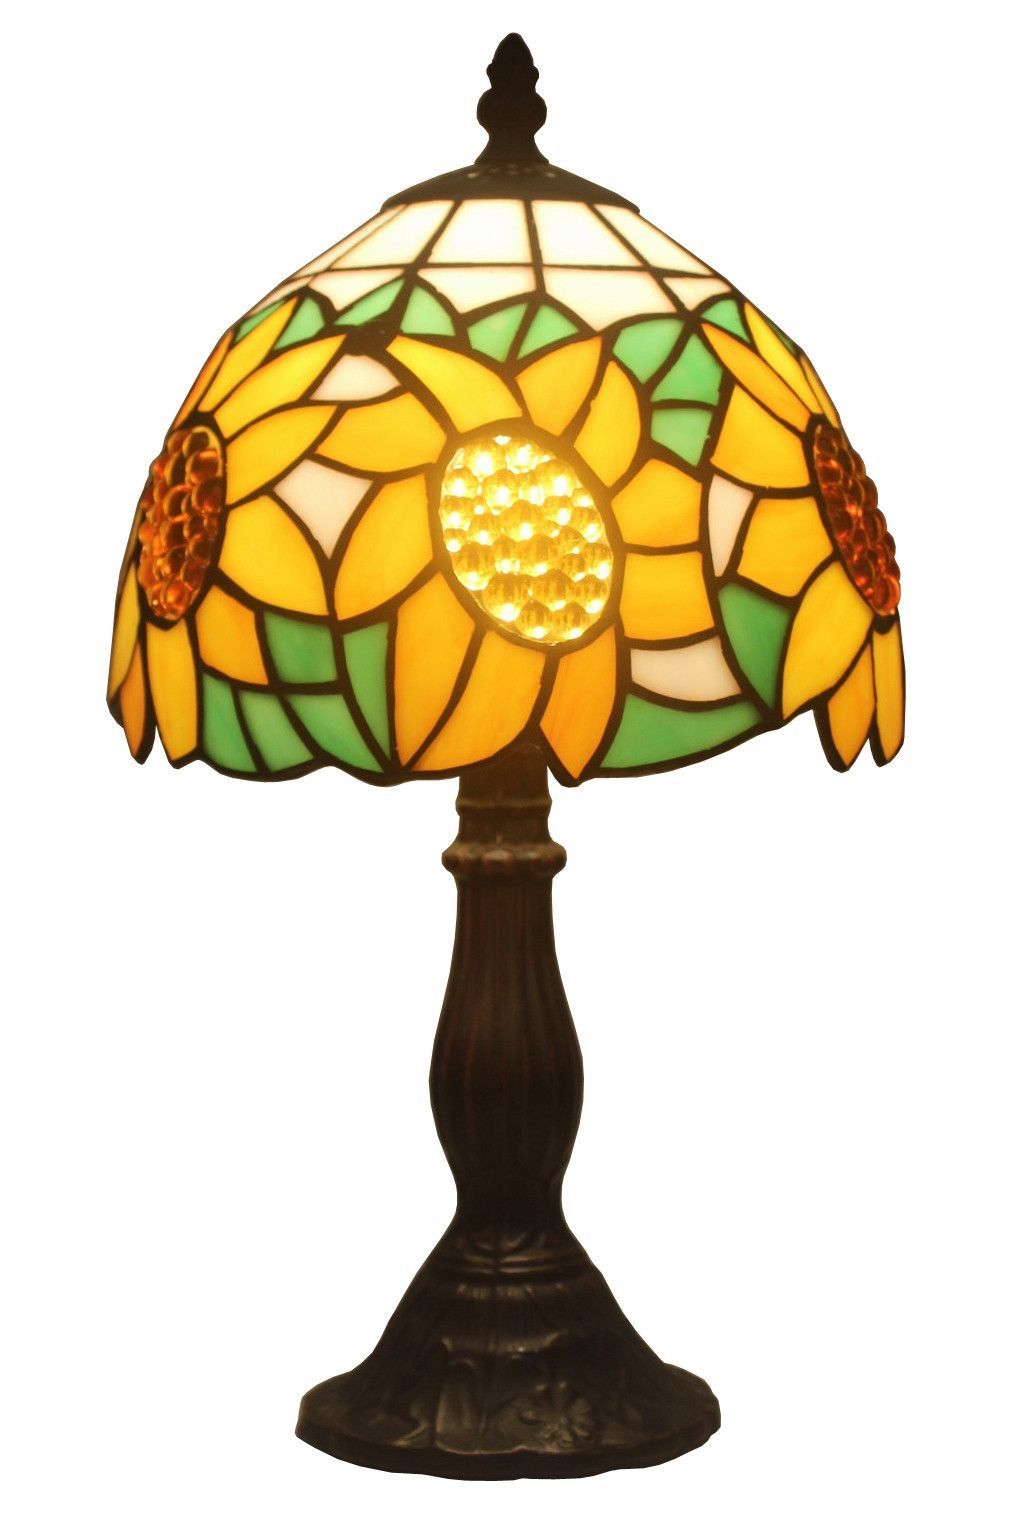 Tiffany Style Lamp Shades Amusing Tiffany Style Sunflower Table Lamp 15  Sunflowers Design Decoration